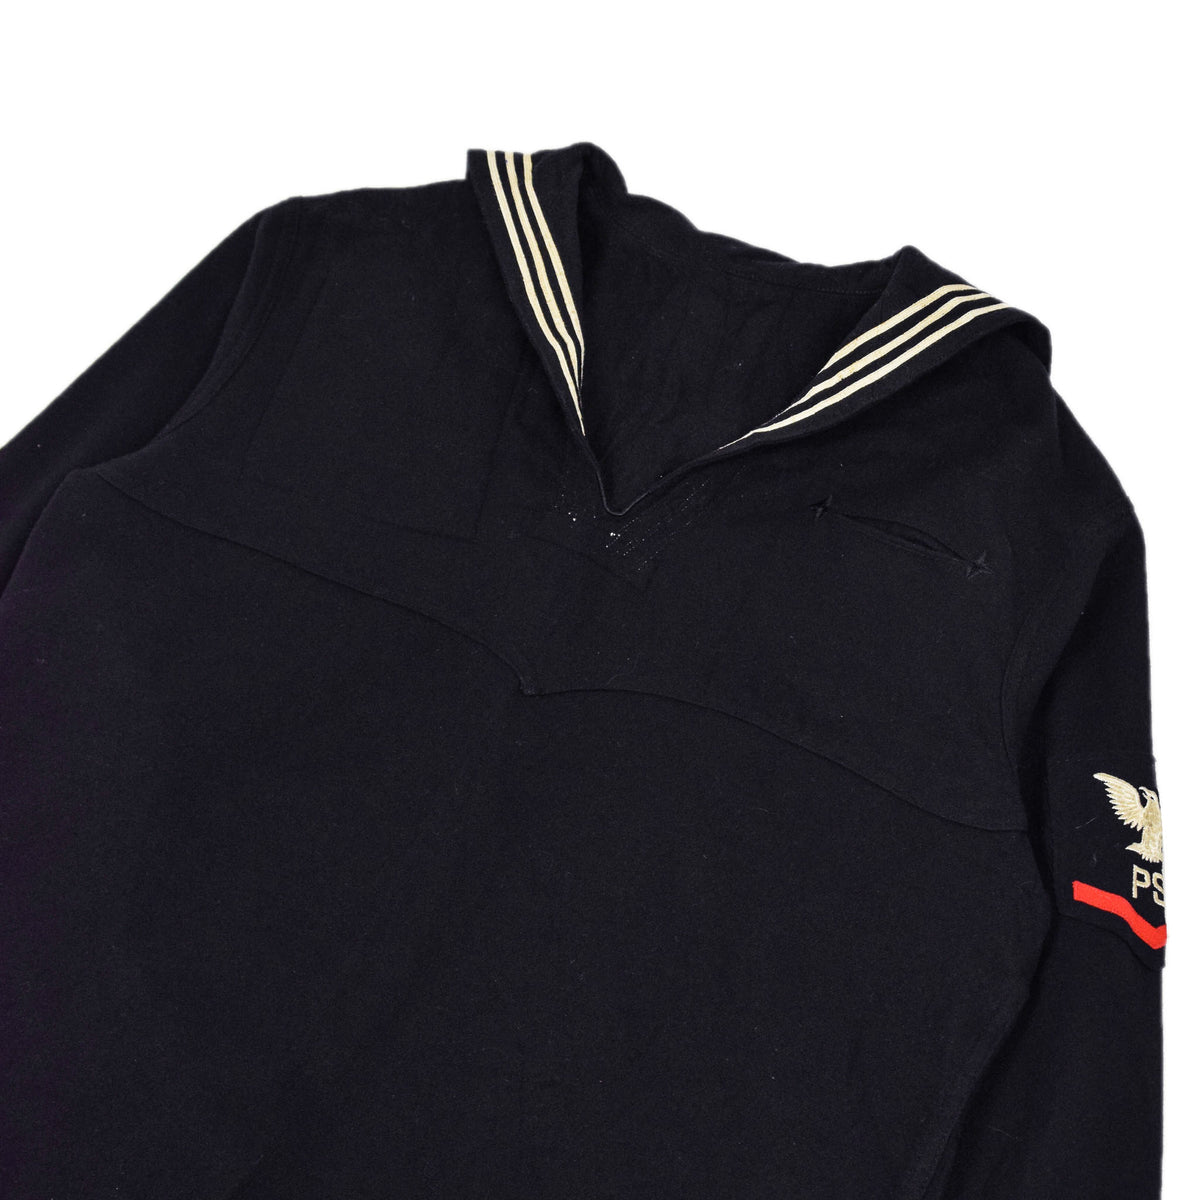 Deadstock Vintage WW2 US Navy Cracker Jack Military Wool Shirt M / L chest